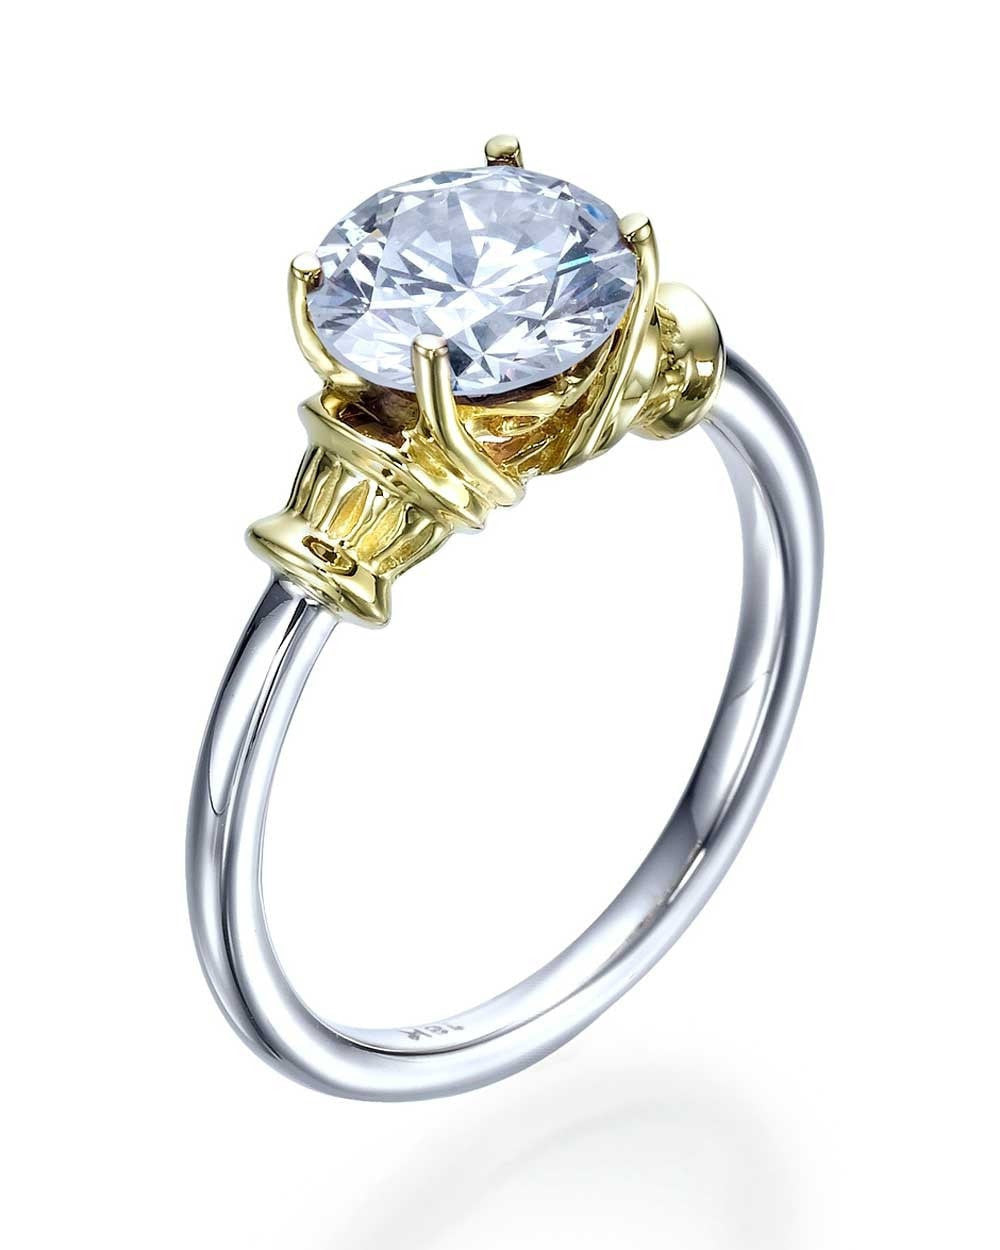 gold ideas enement rings antique inspirational diamond vintage promise wedding